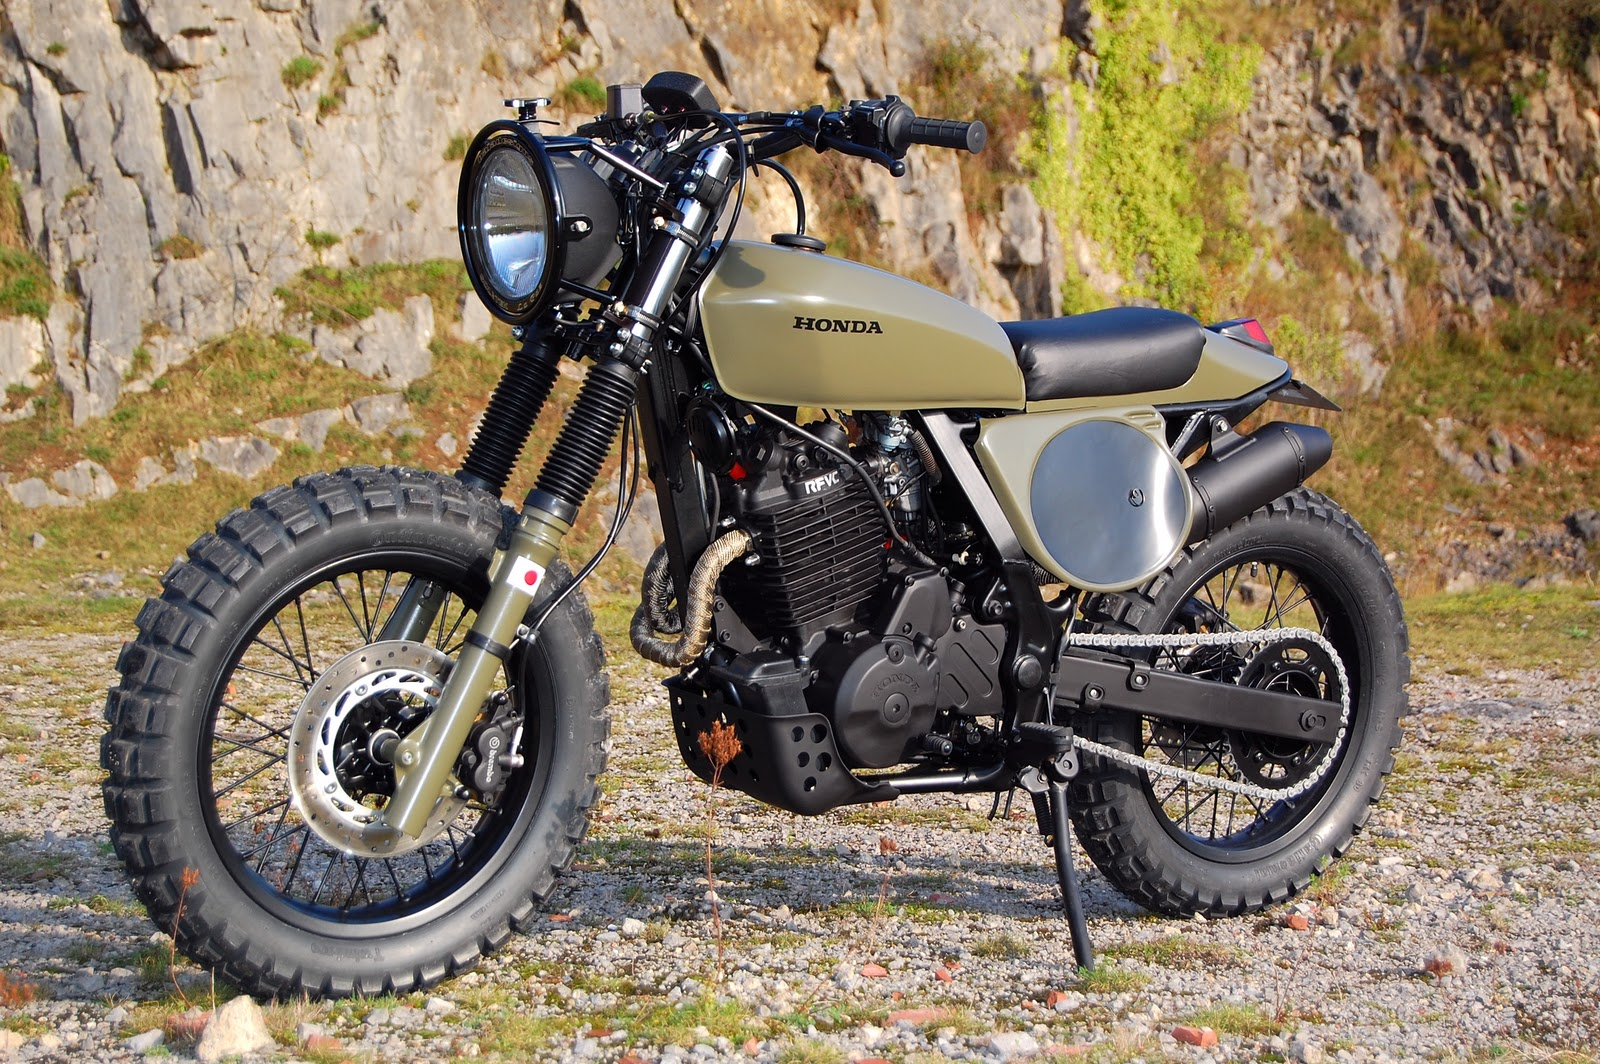 cafe racer special honda nx 650 dominator street tracker scrambler. Black Bedroom Furniture Sets. Home Design Ideas